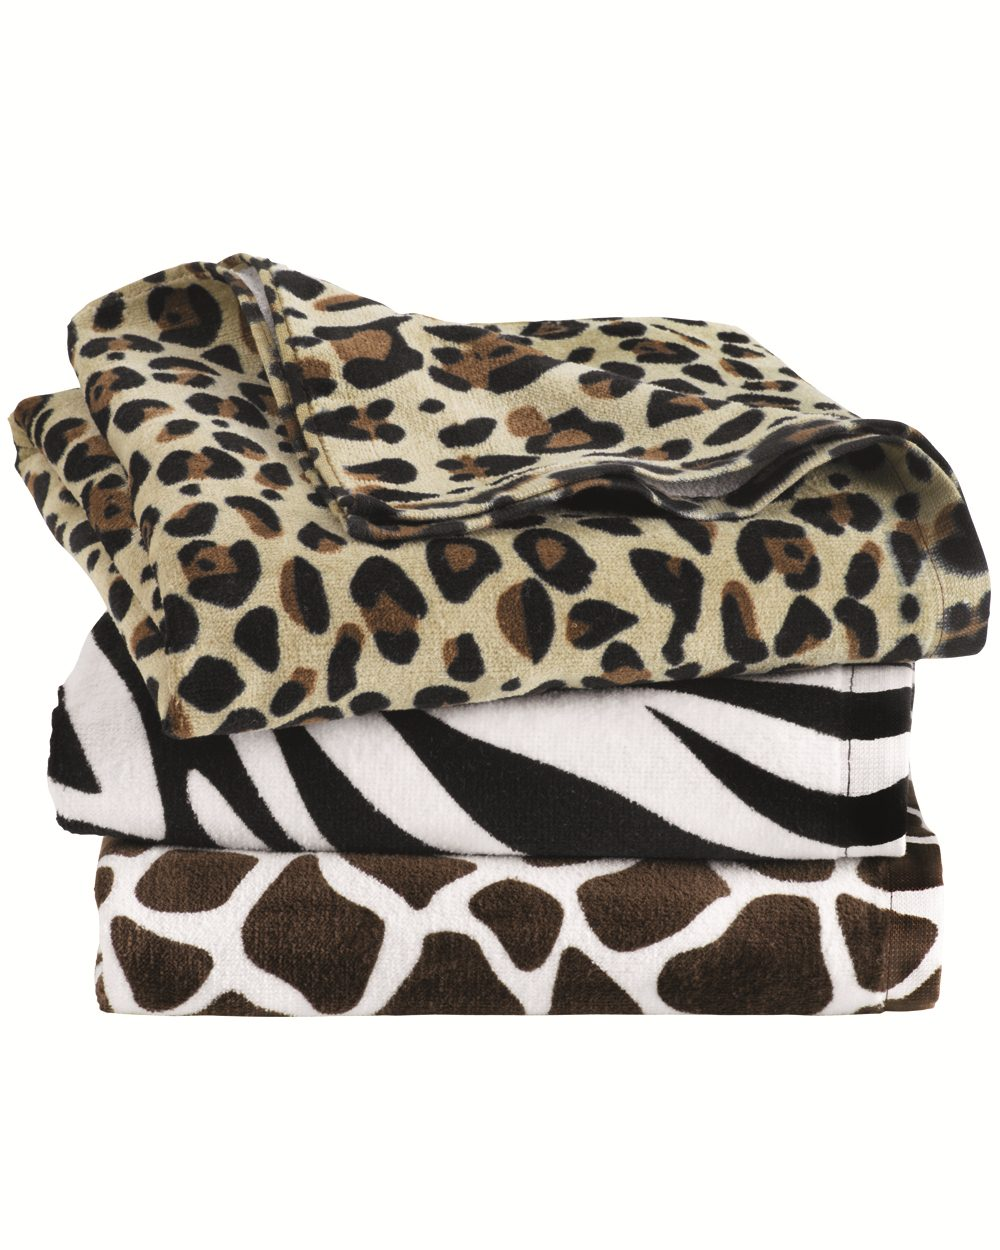 Carmel Towel Company 3060A - Animal Print Velour Beach ...